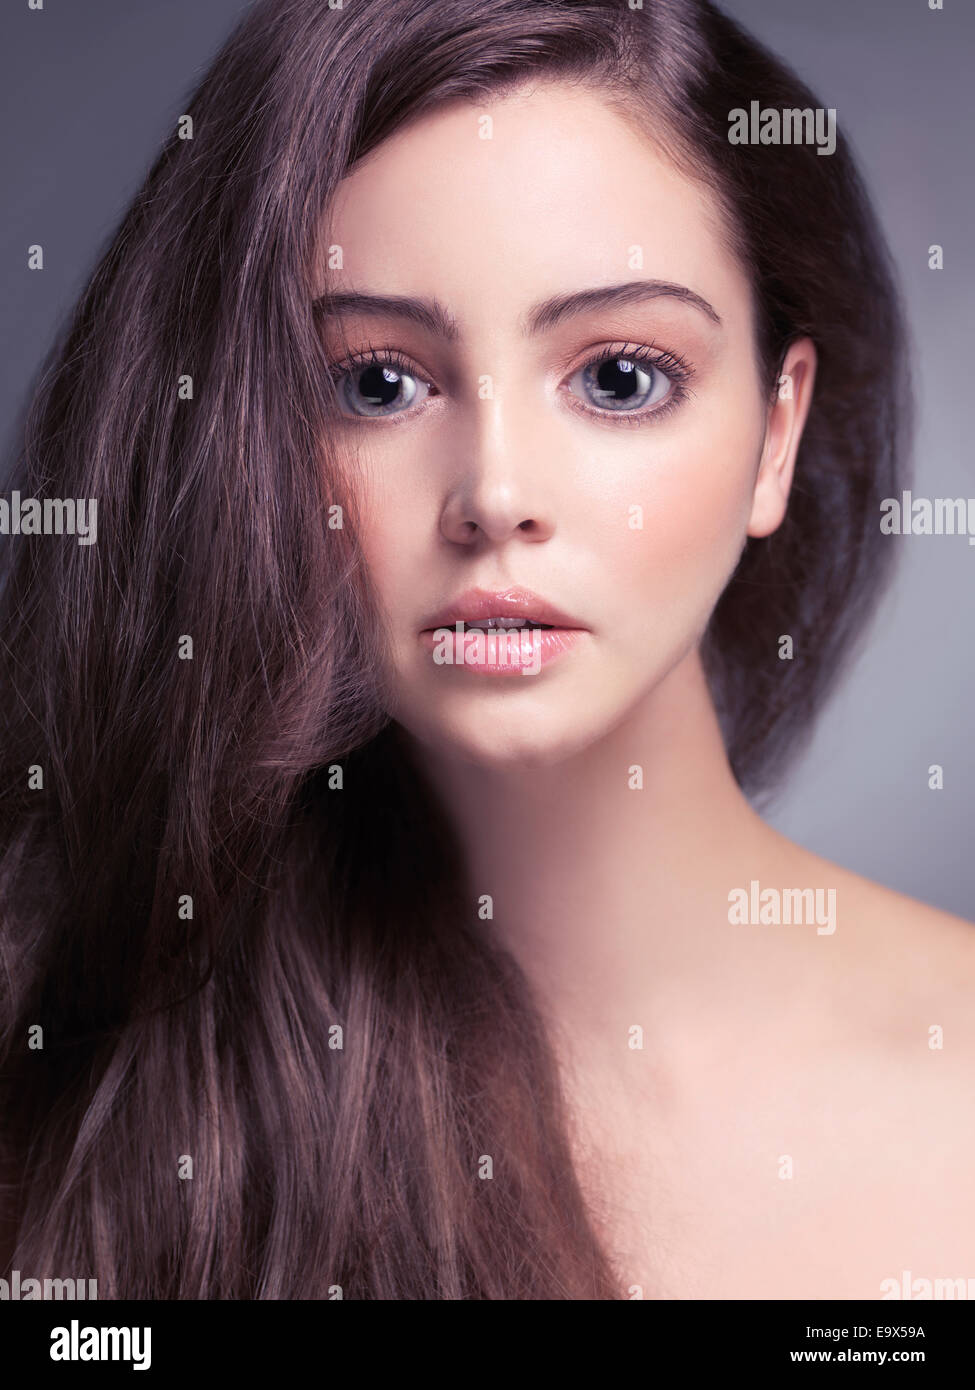 Cute young woman face with big gray eyes and long brown hair